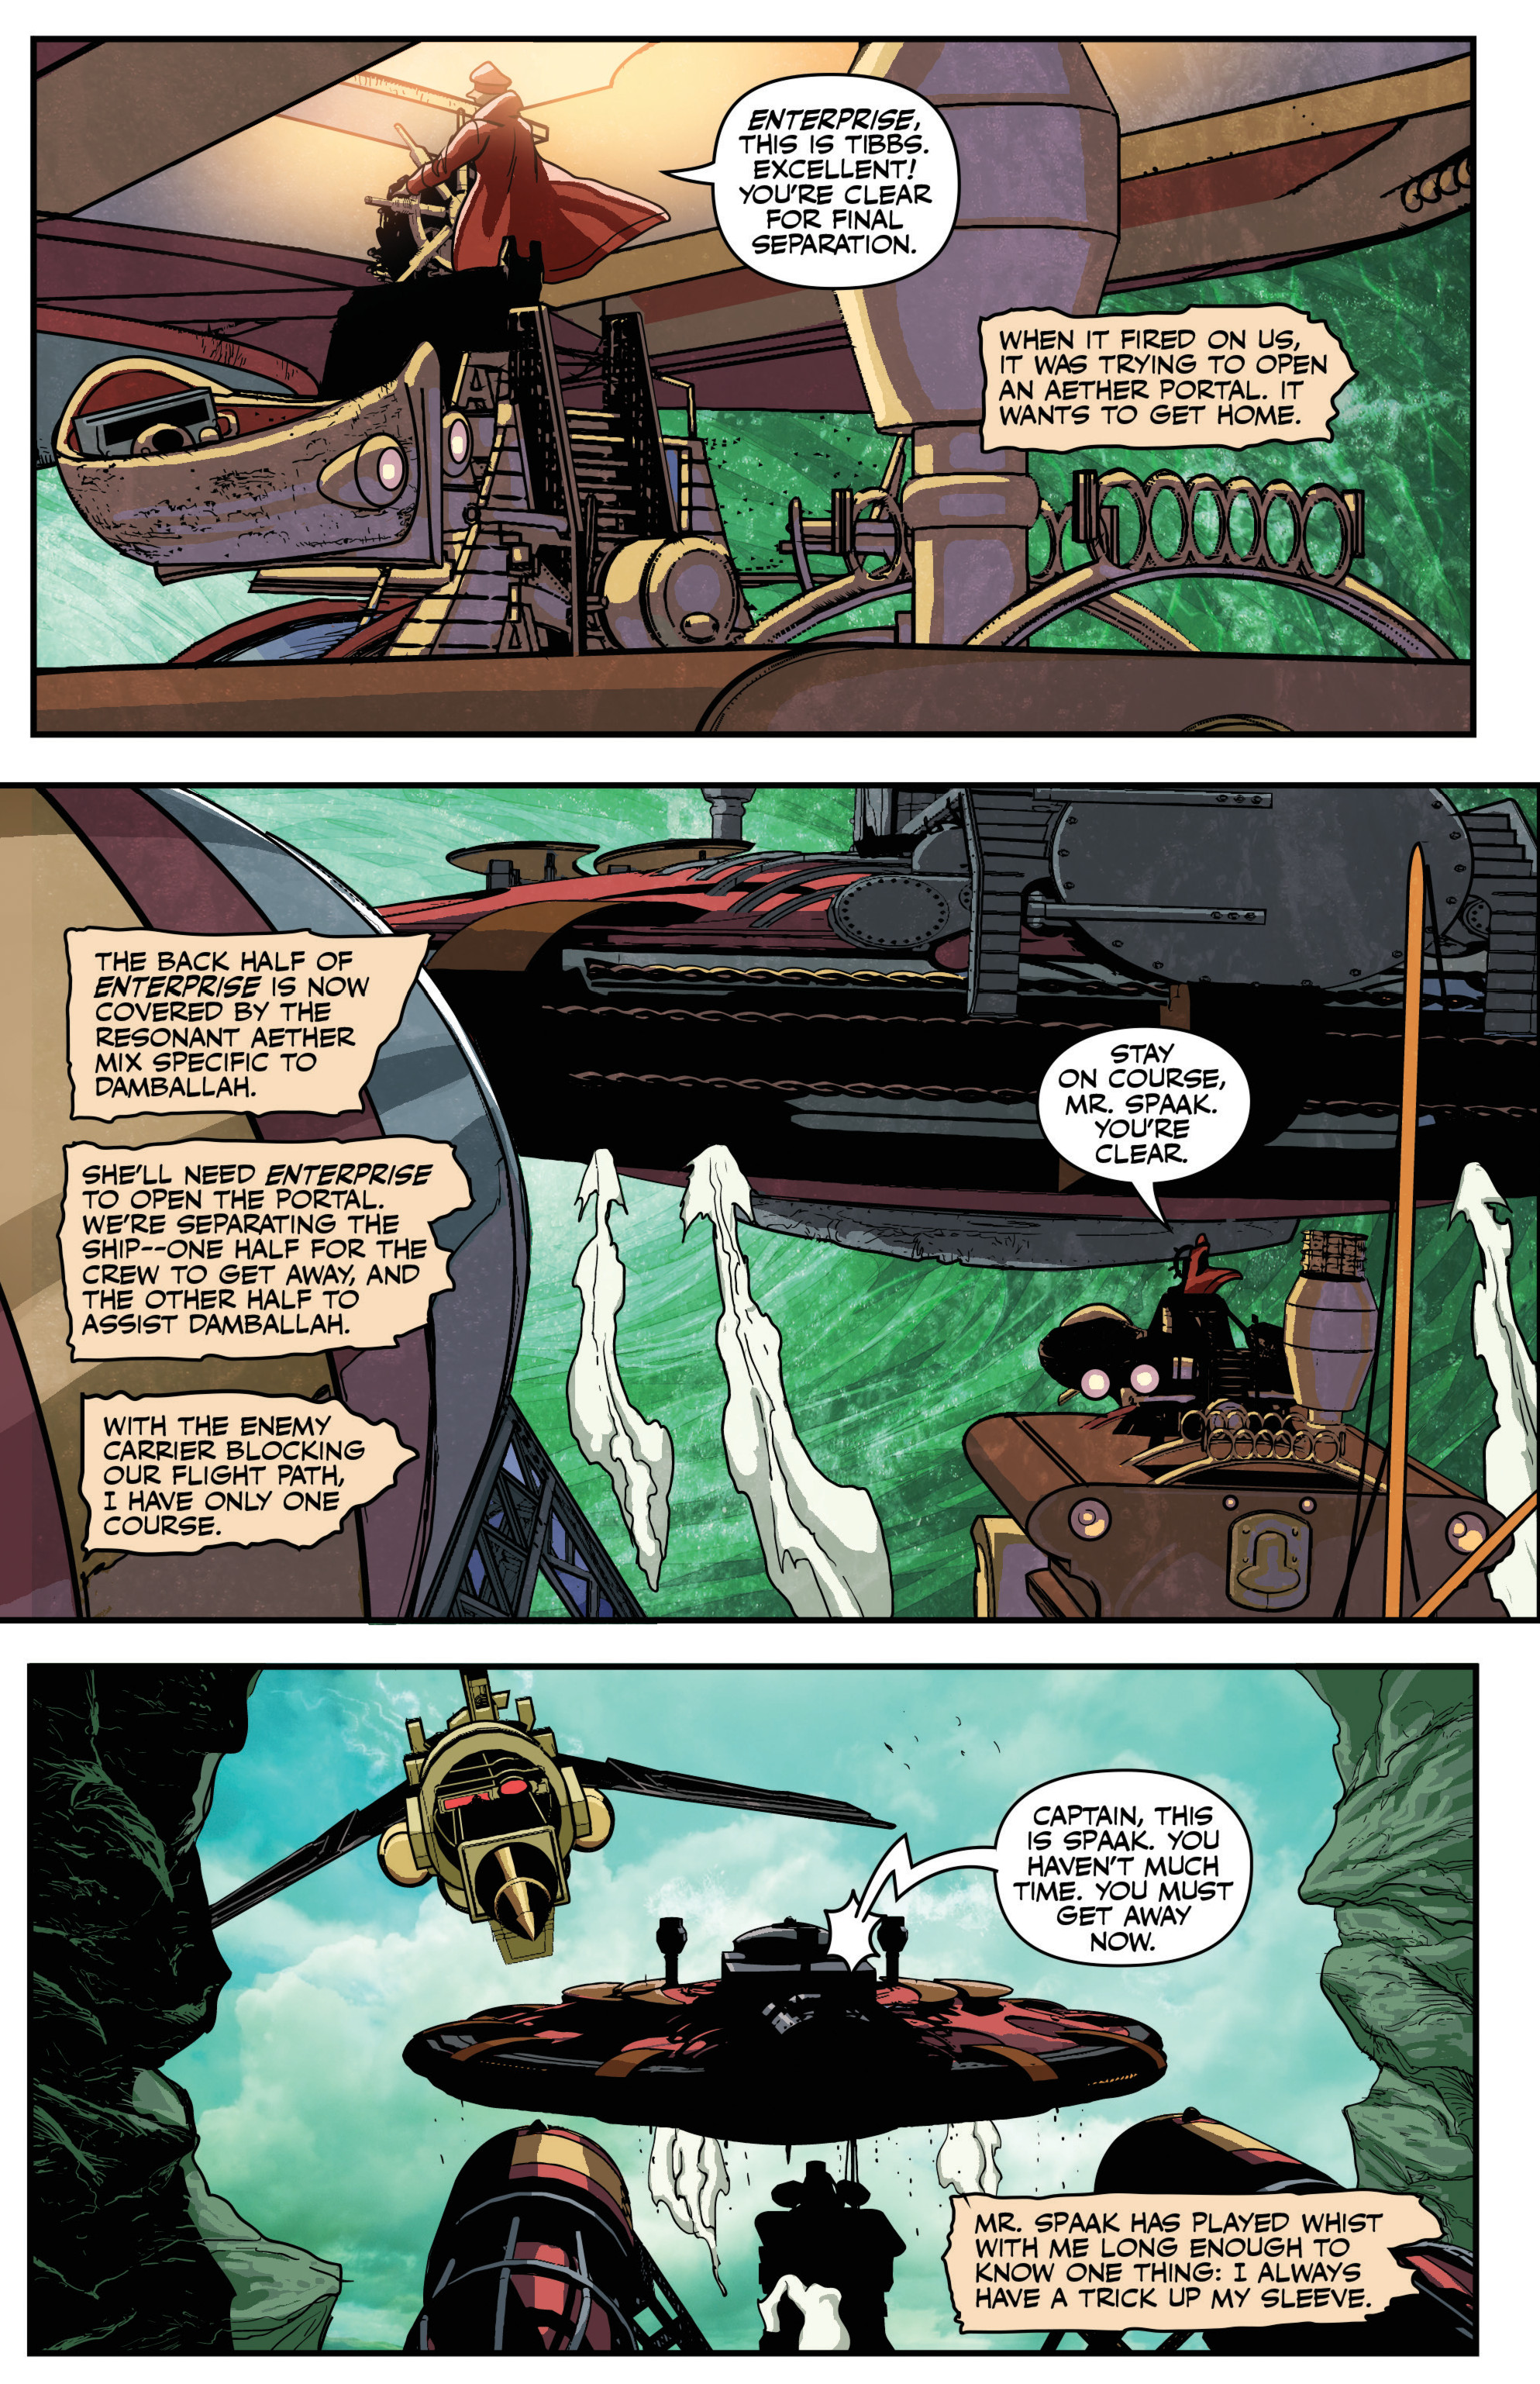 Read online Airship Enterprise: The Infernal Machine comic -  Issue #4 - 9